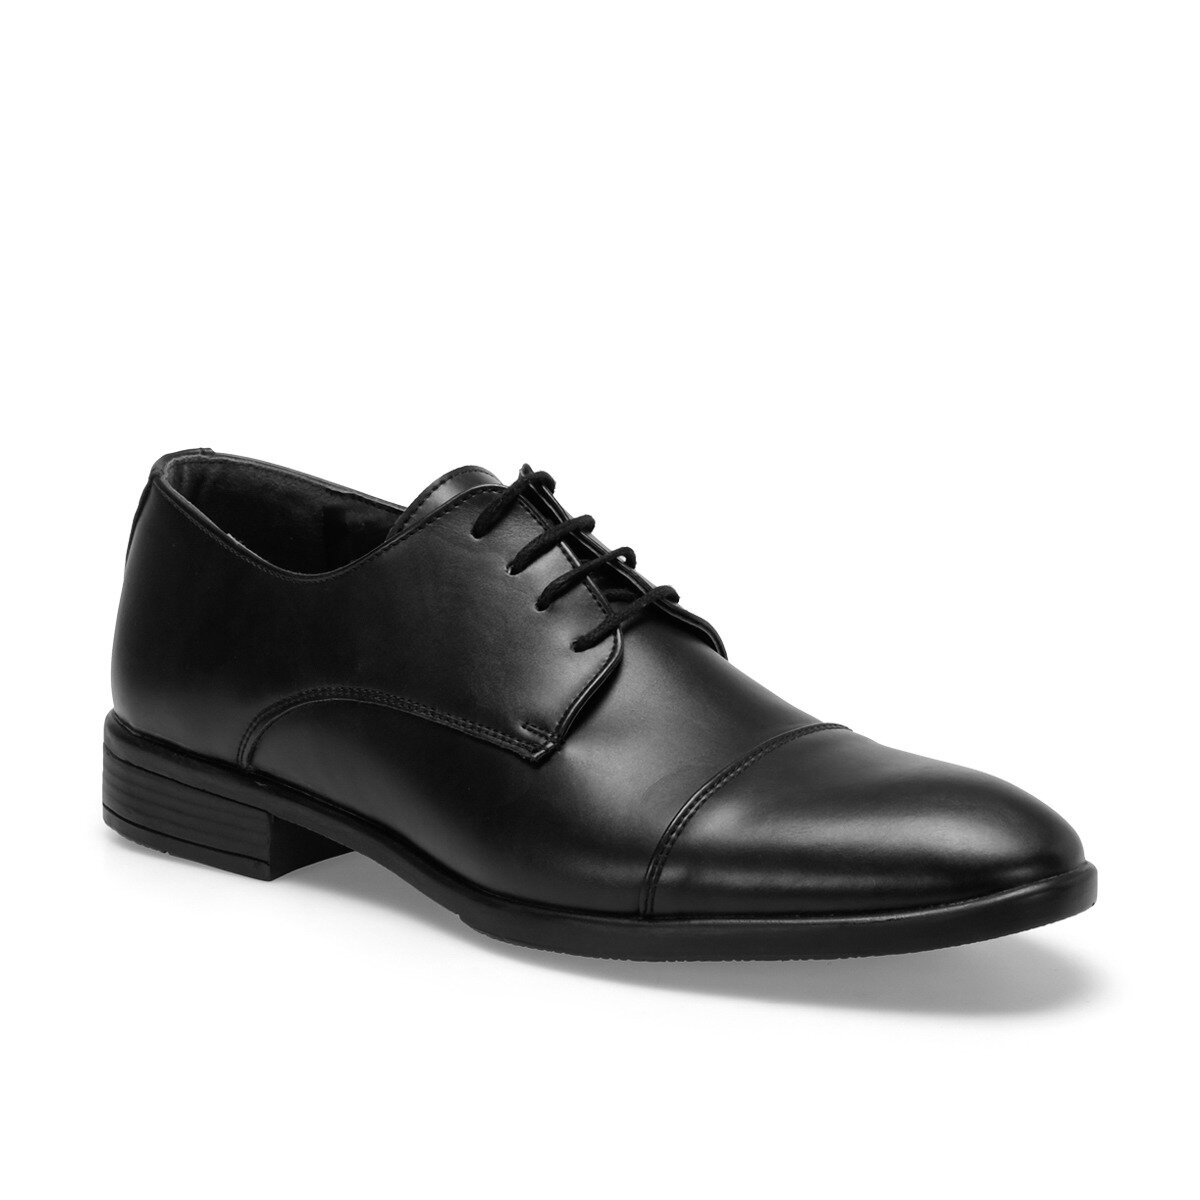 FLO 113 C Black Male Maskaret Shoes DOWN TOWN